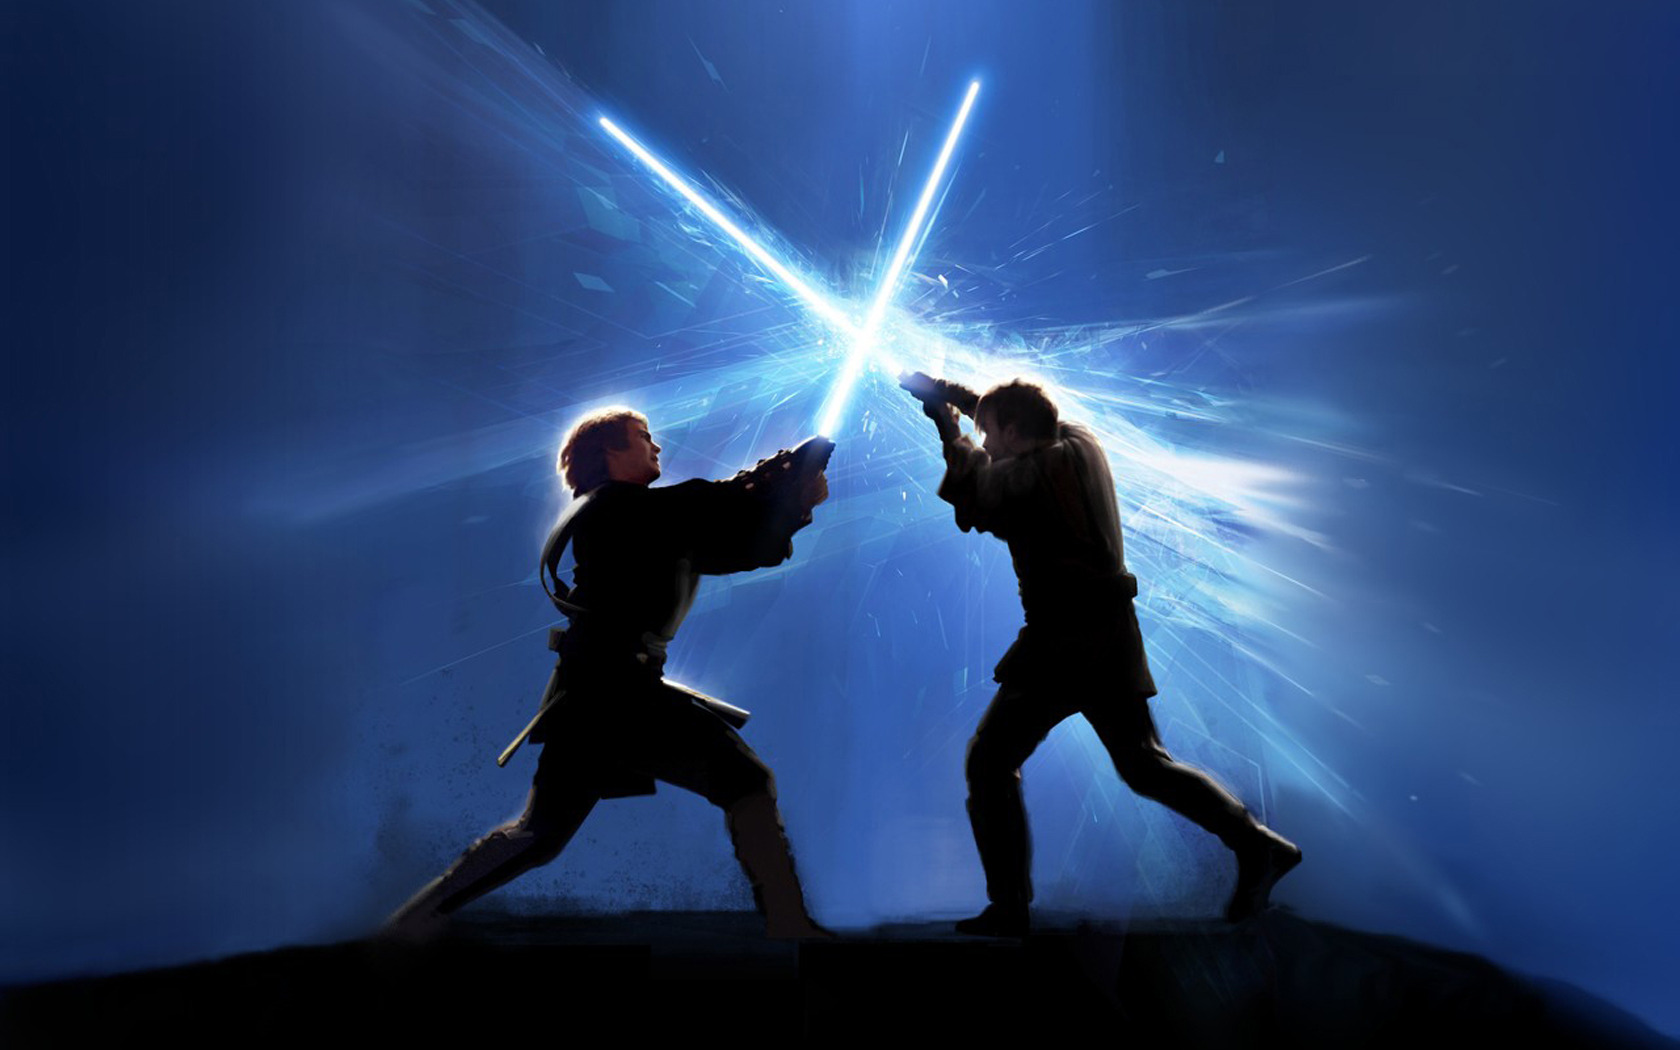 a personal narrative about a light saber laser fight